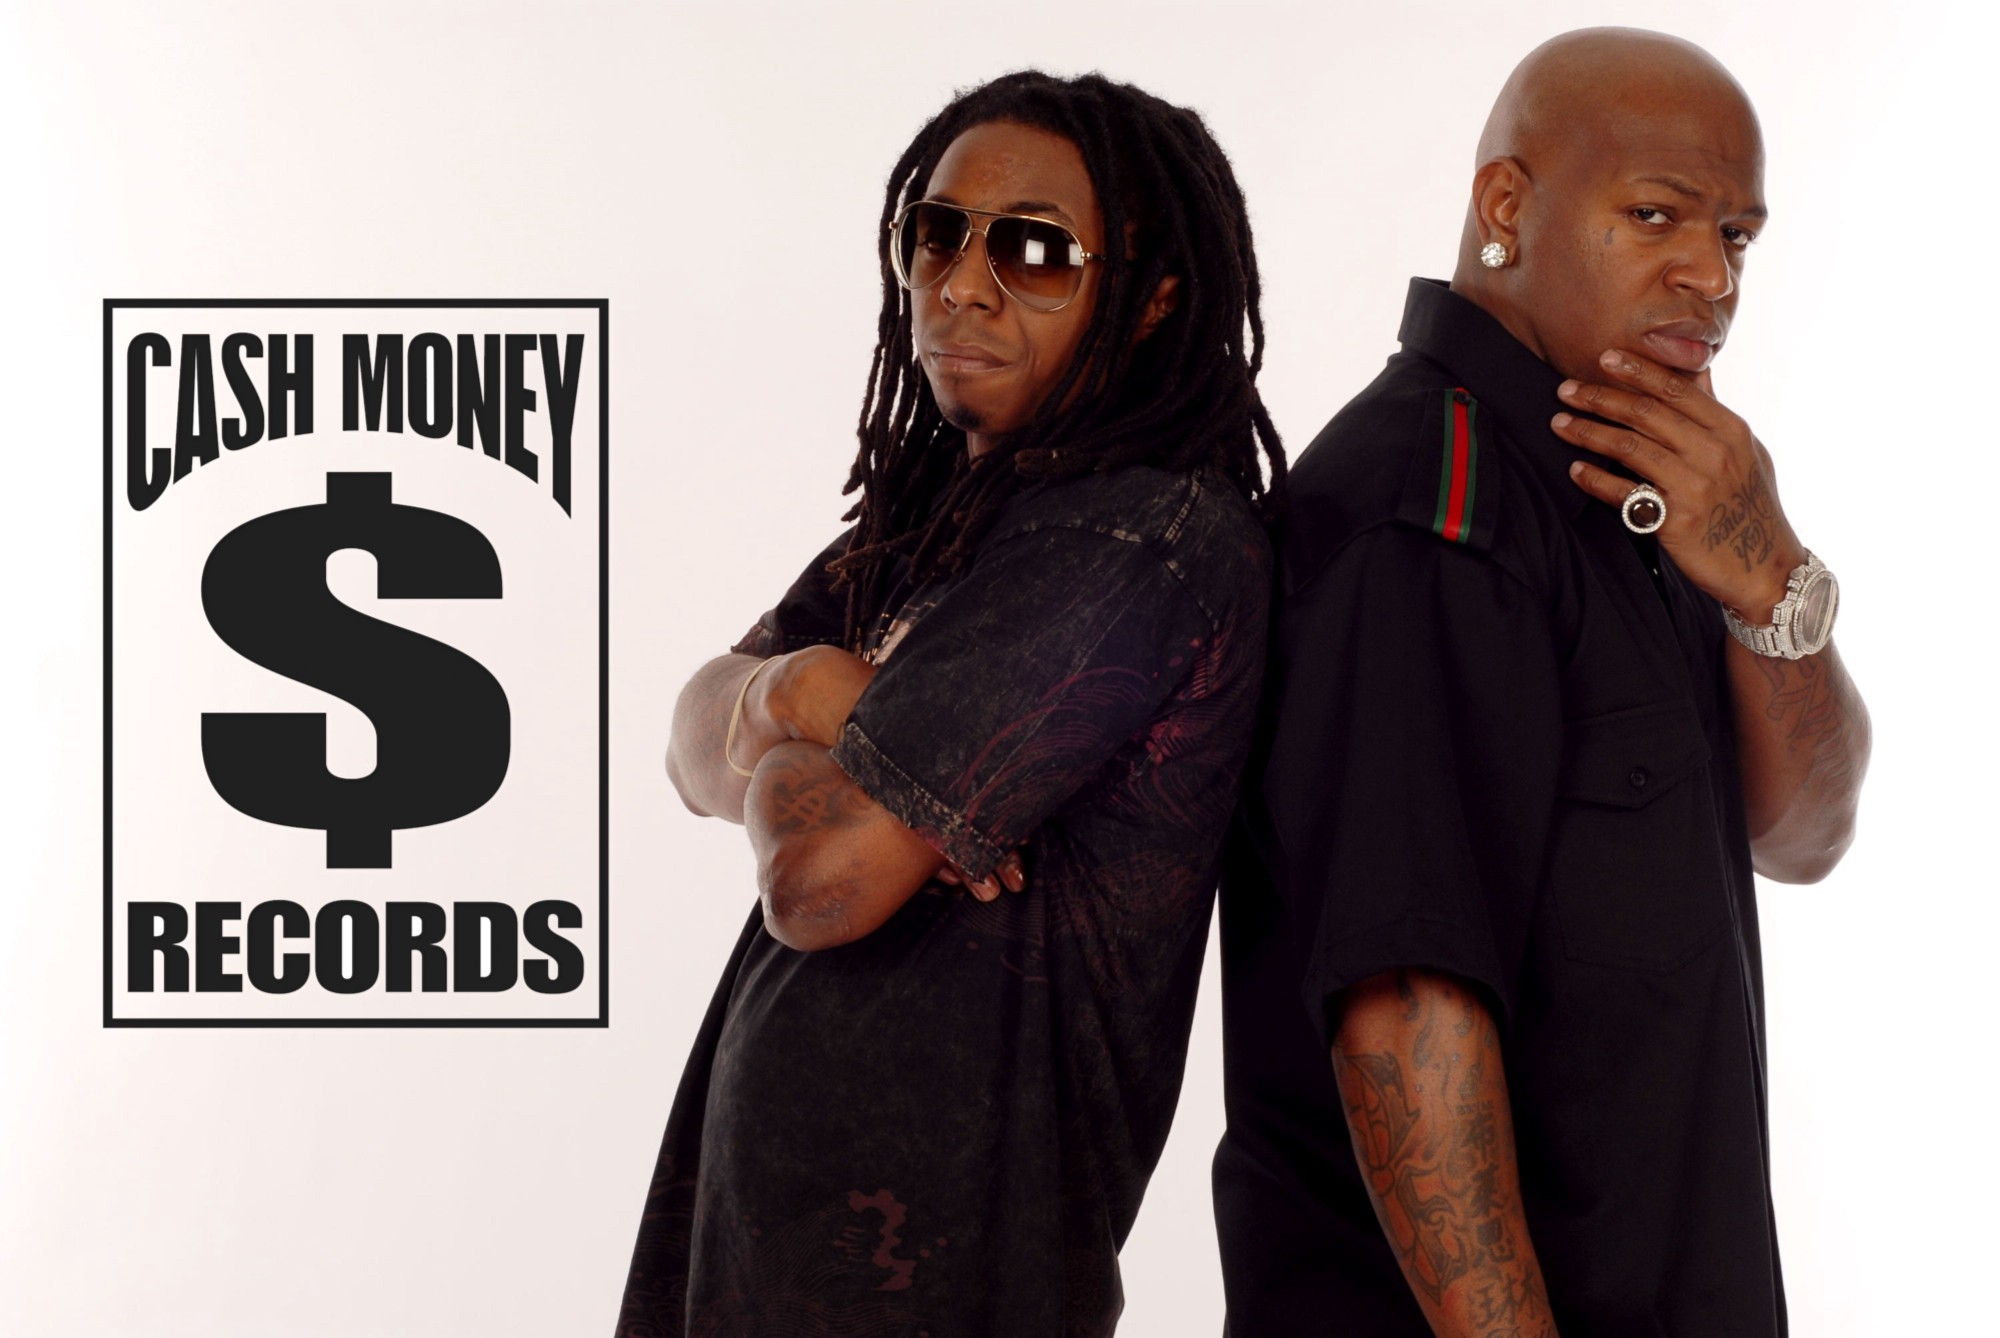 Lil wayne cash money millionaires mp3